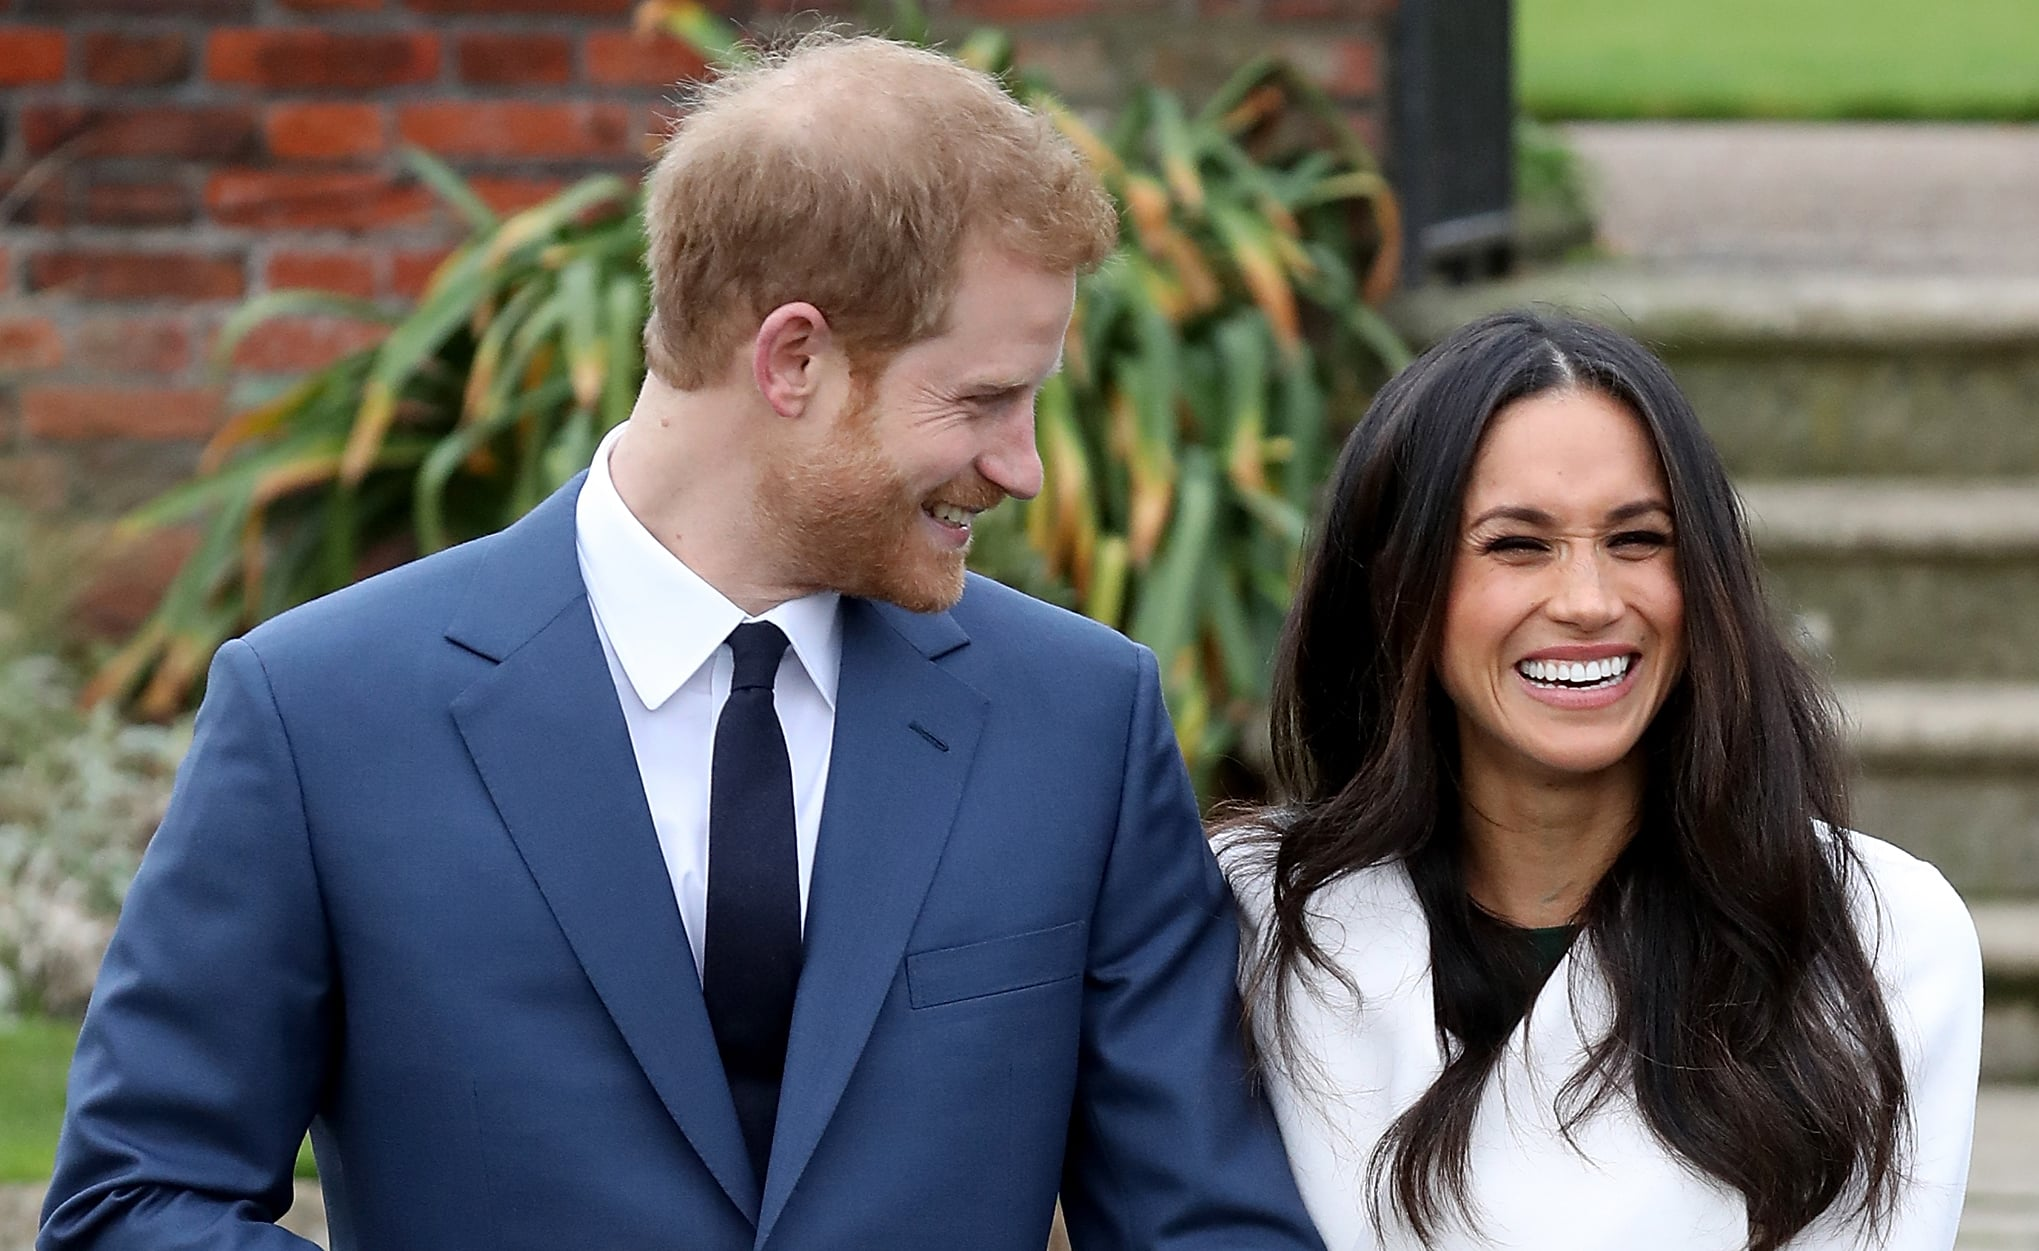 bf5938c45fe Prince Harry and Meghan Markle Wedding Party